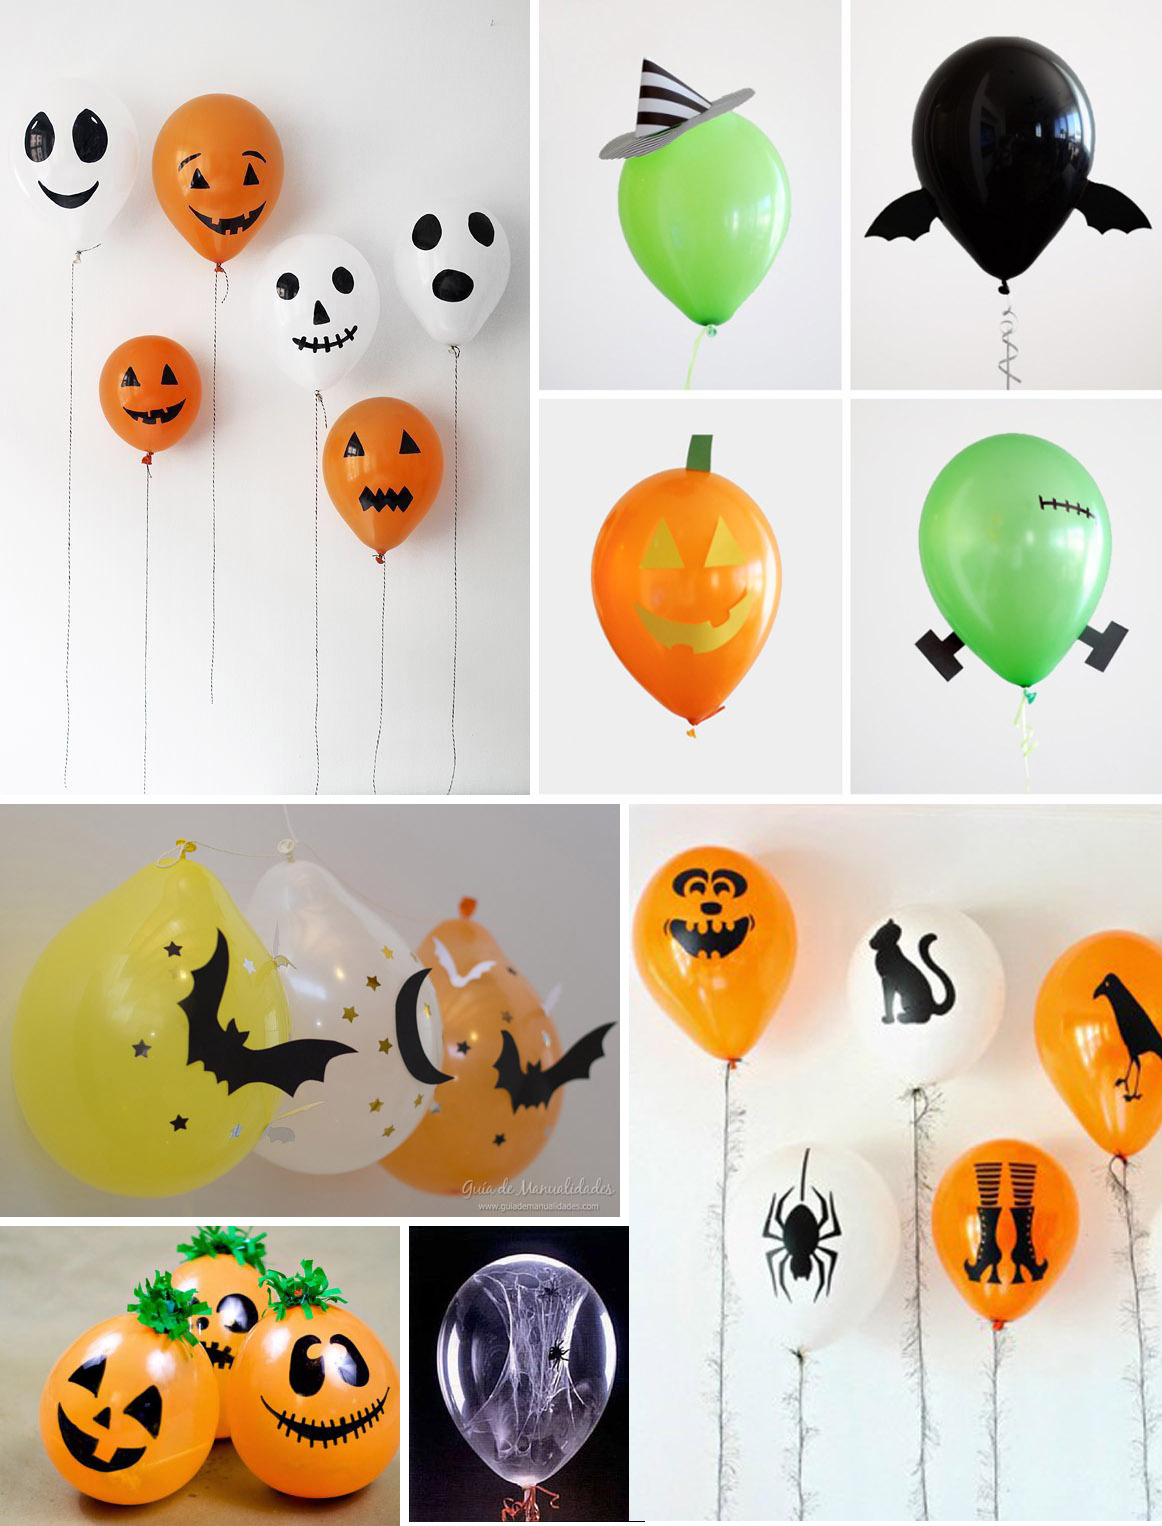 5 ideas para decorar una fiesta infantil de halloween rutchicote - Ideas decoracion halloween fiesta ...